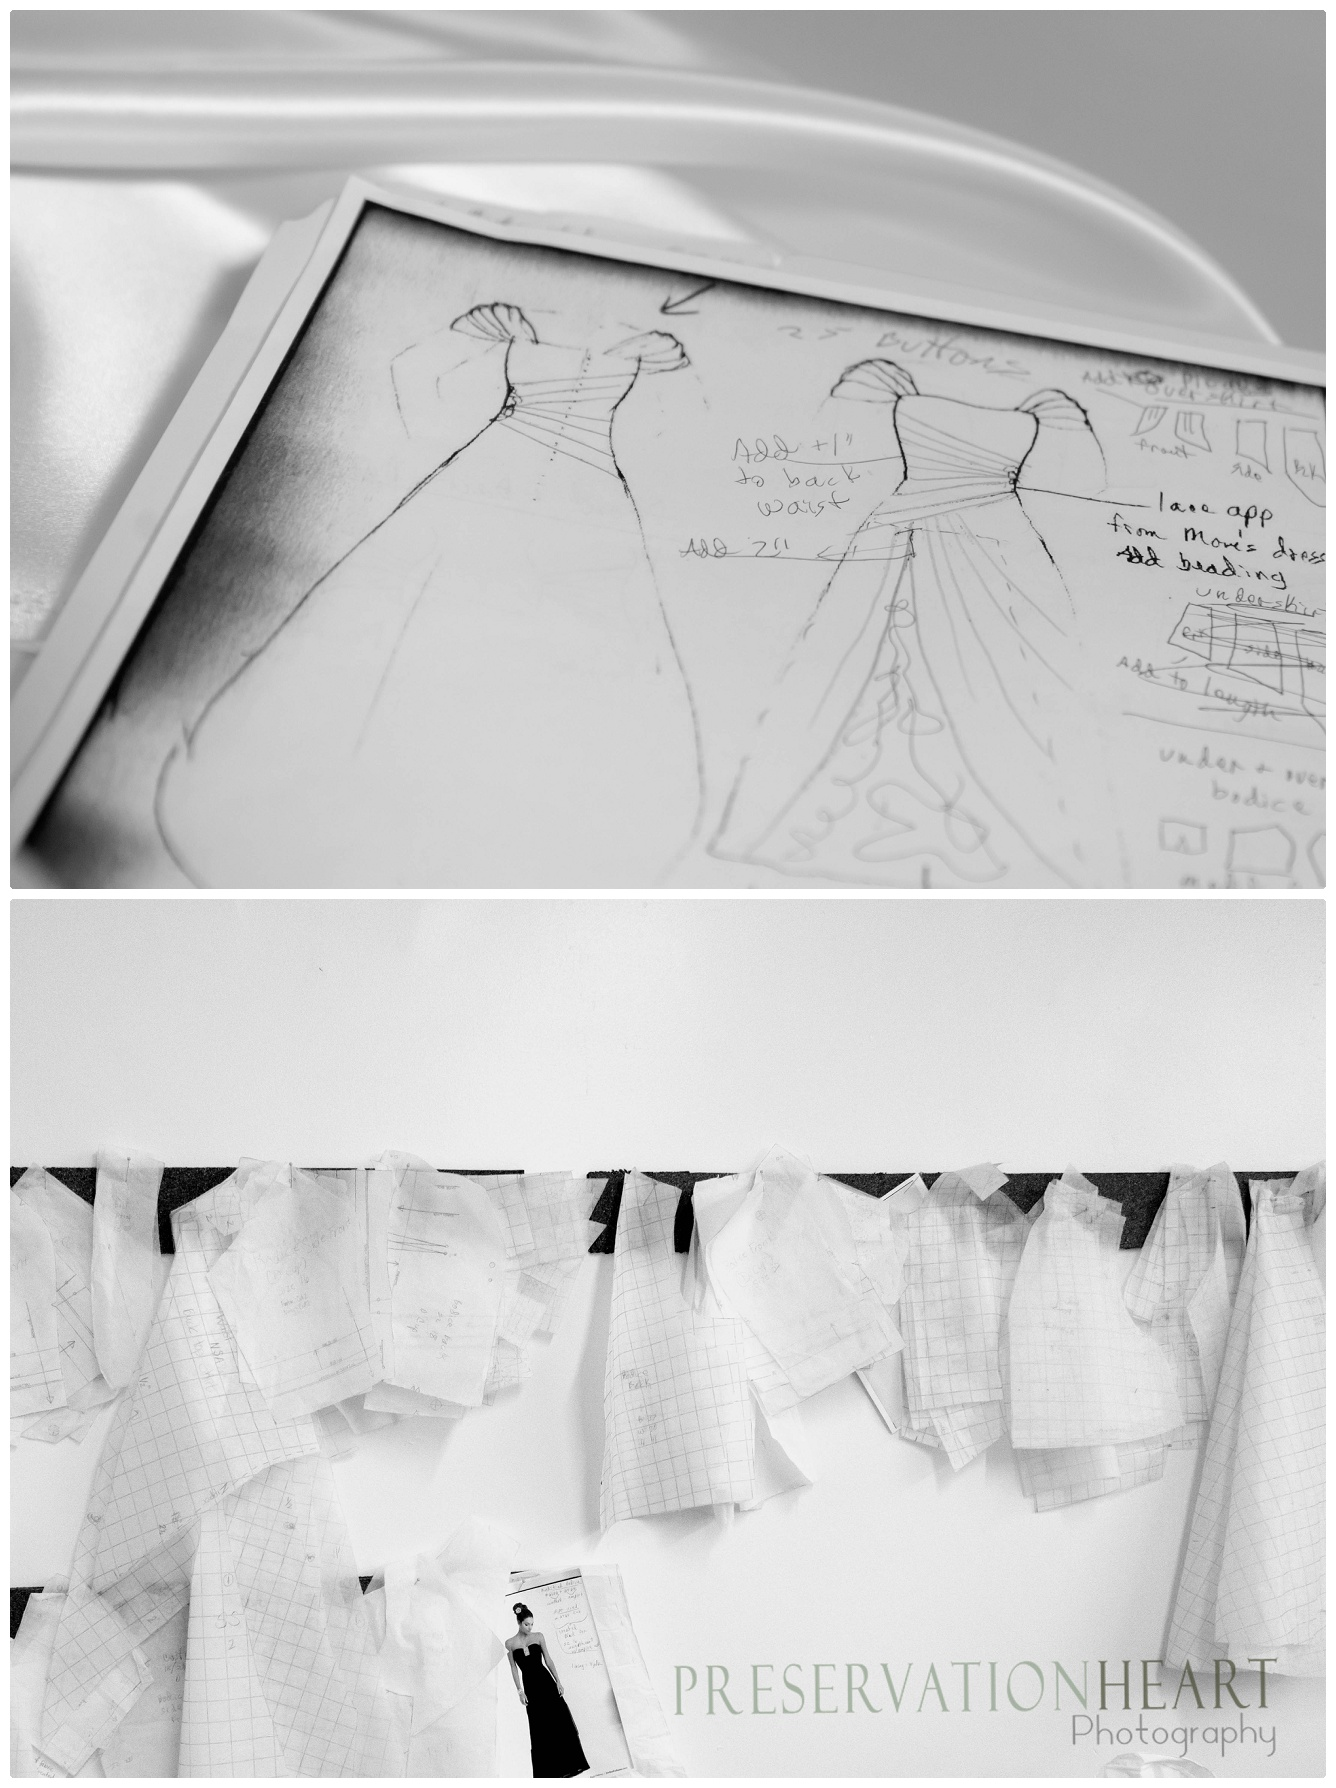 Hand sketched designs and patterns decorate the studio space